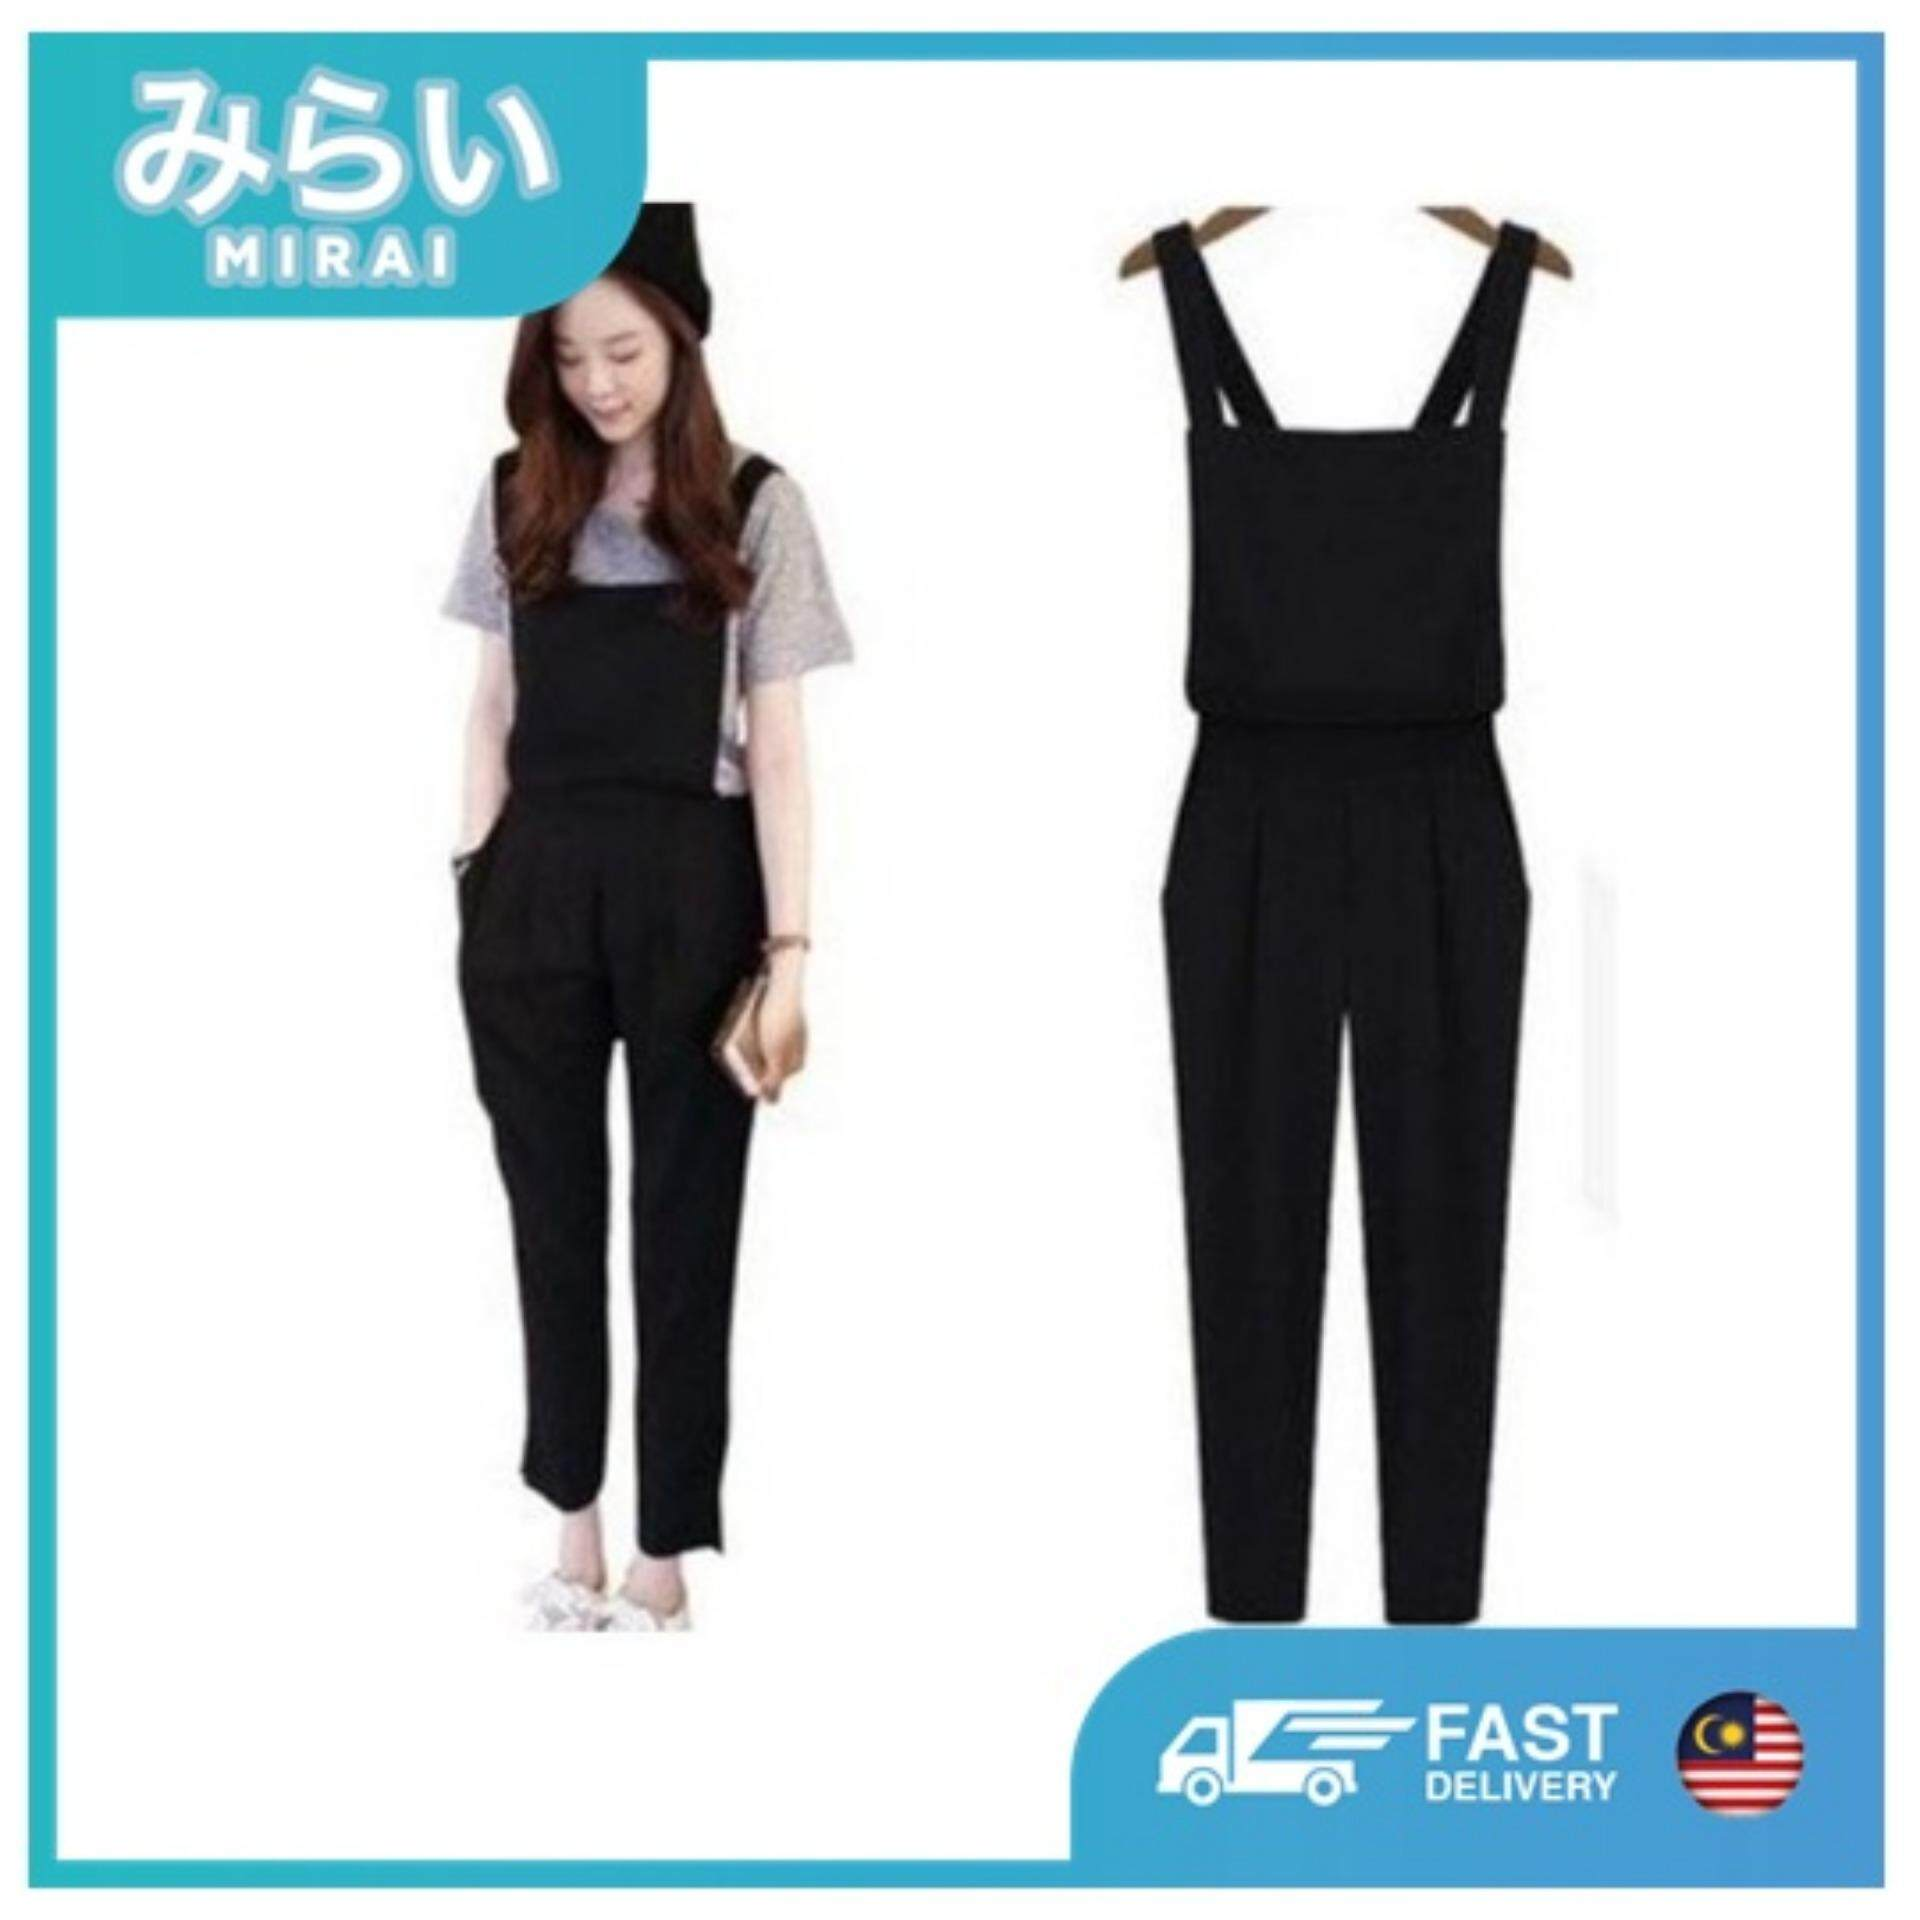 87bf2491c9be Women s Jumpsuits   Playsuits - Buy Women s Jumpsuits   Playsuits at ...